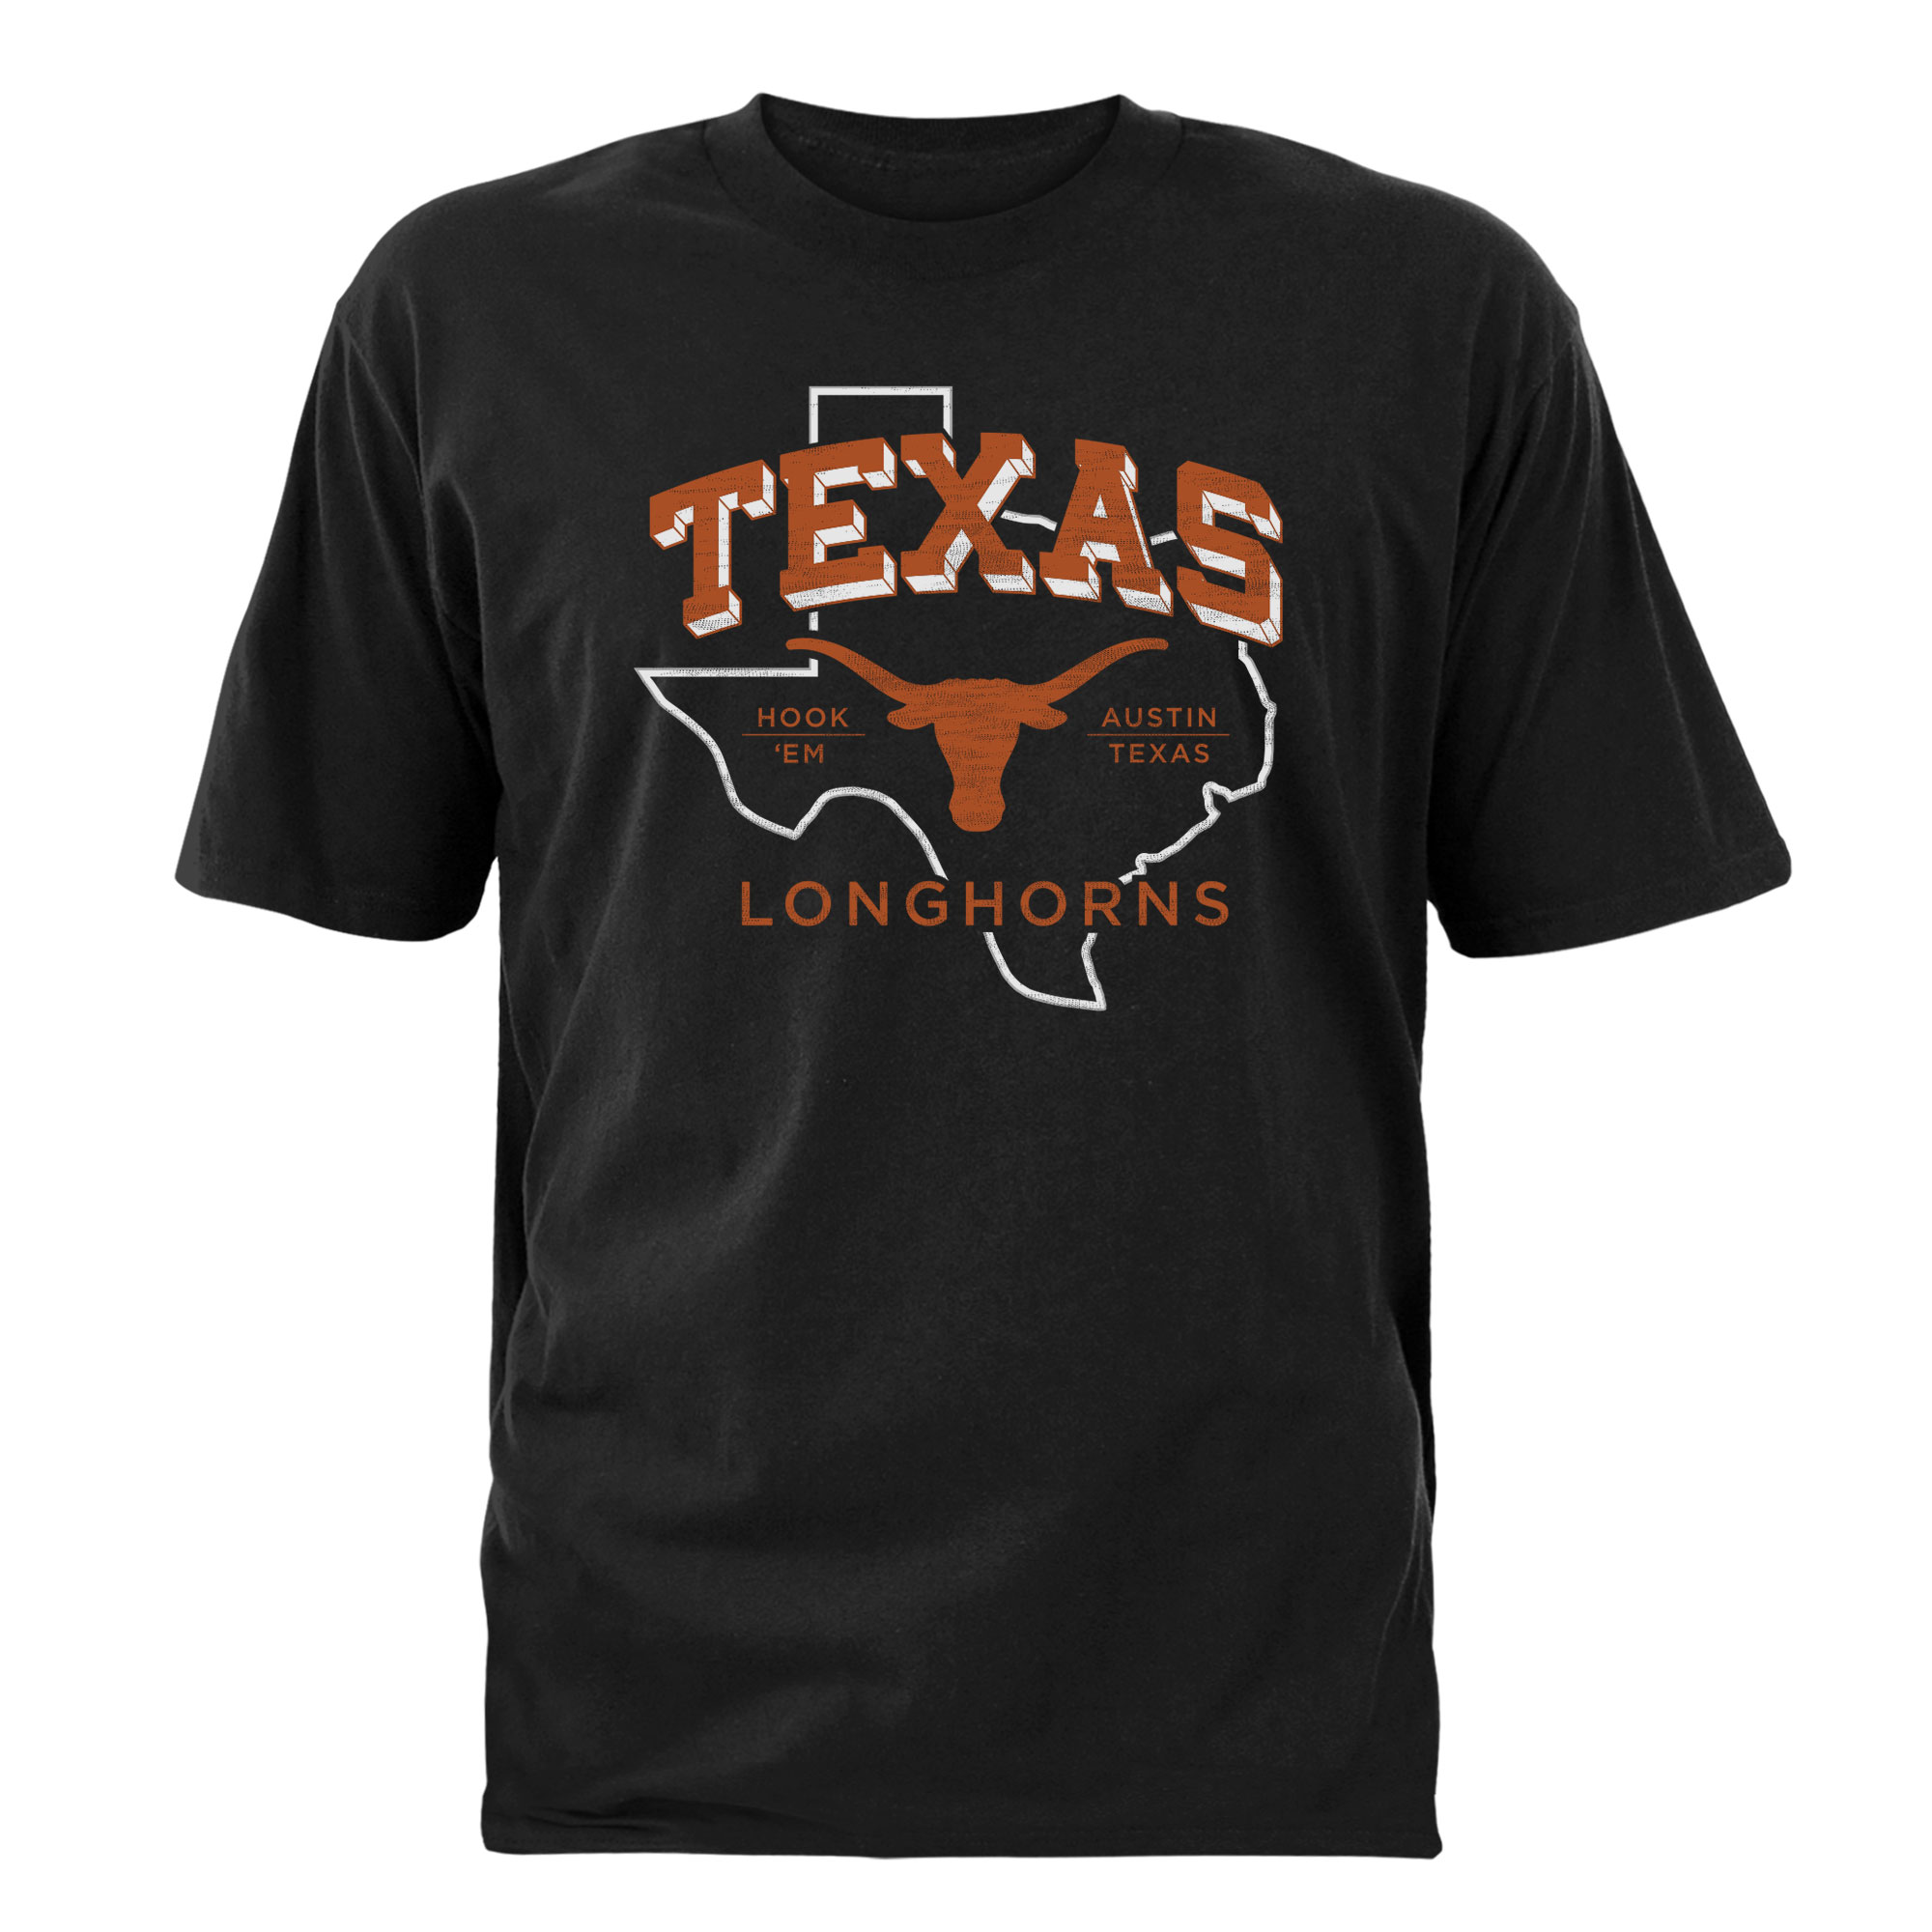 Men's Black Texas Longhorns Prideland T-Shirt